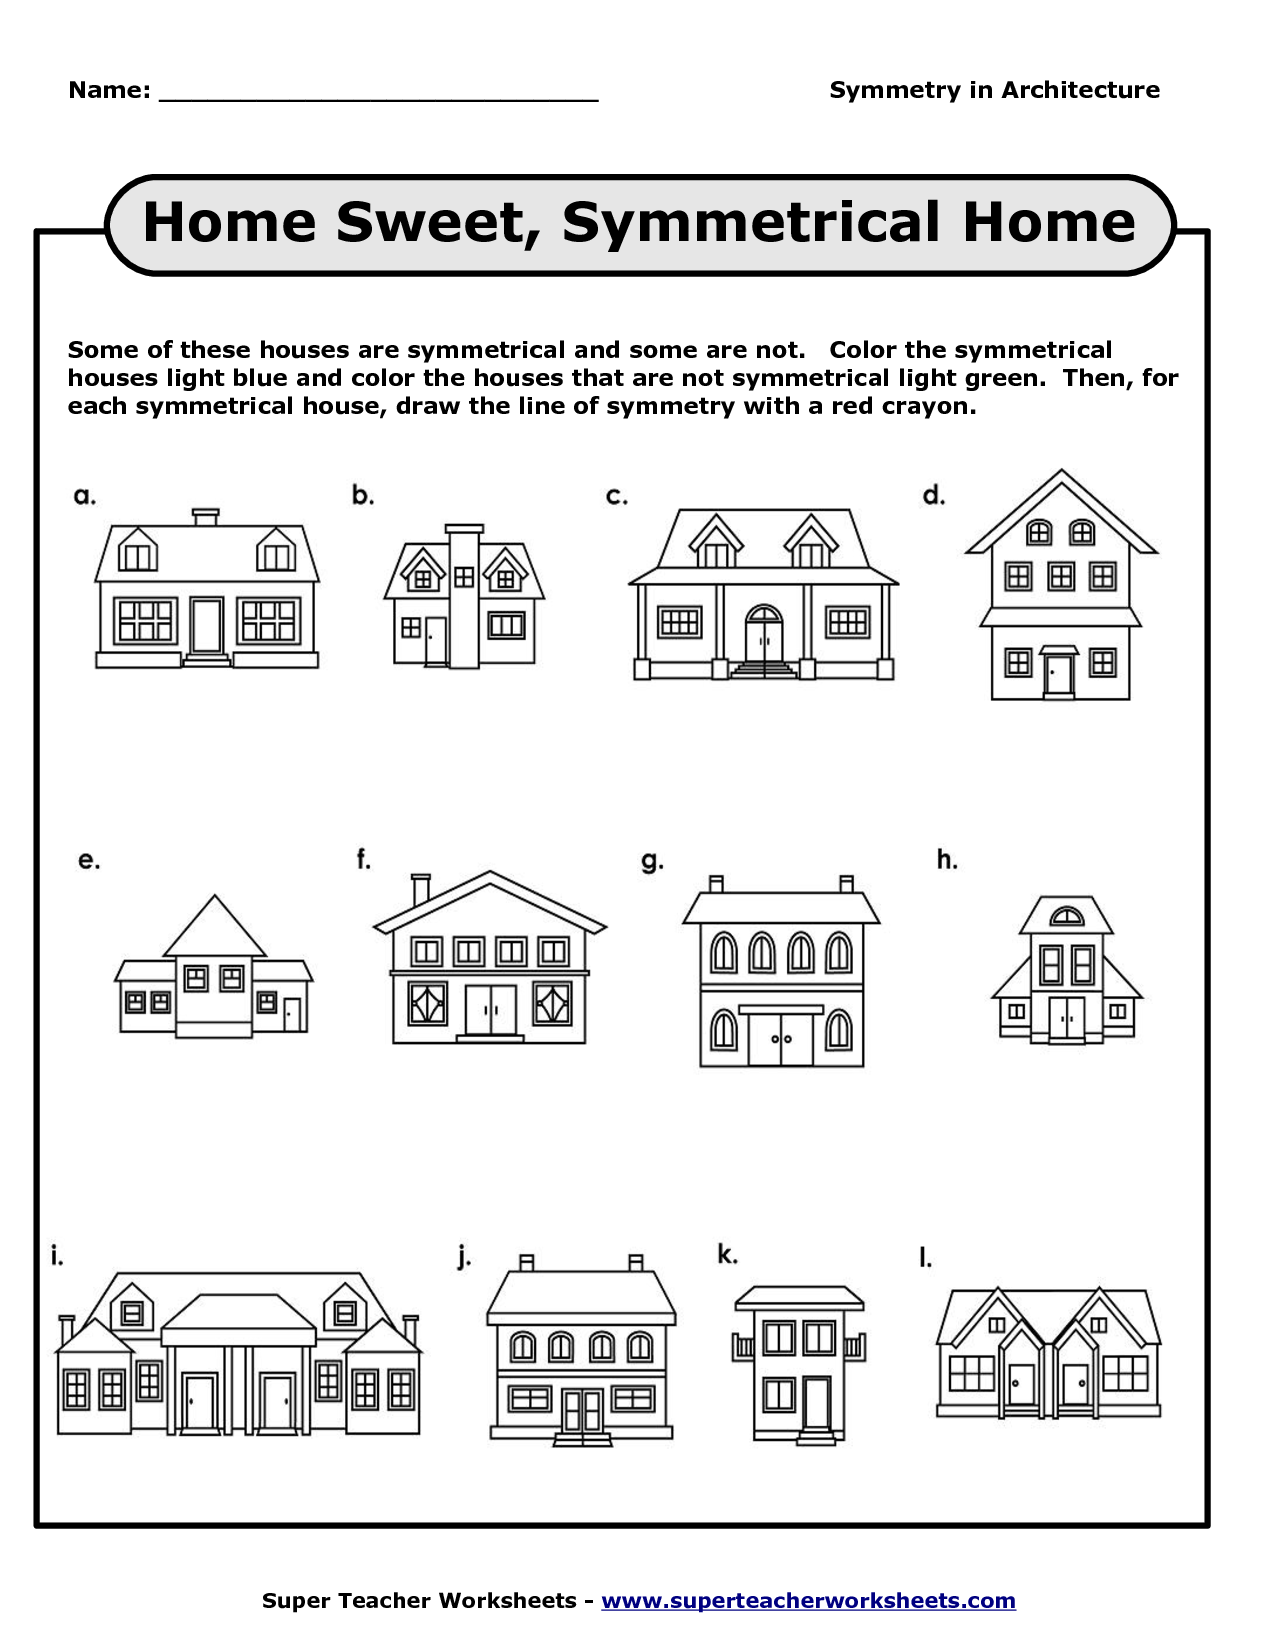 Symmetry Worksheet Houses Google Zoeken Symmetry Worksheets Super Teacher Worksheets Basic Math Skills